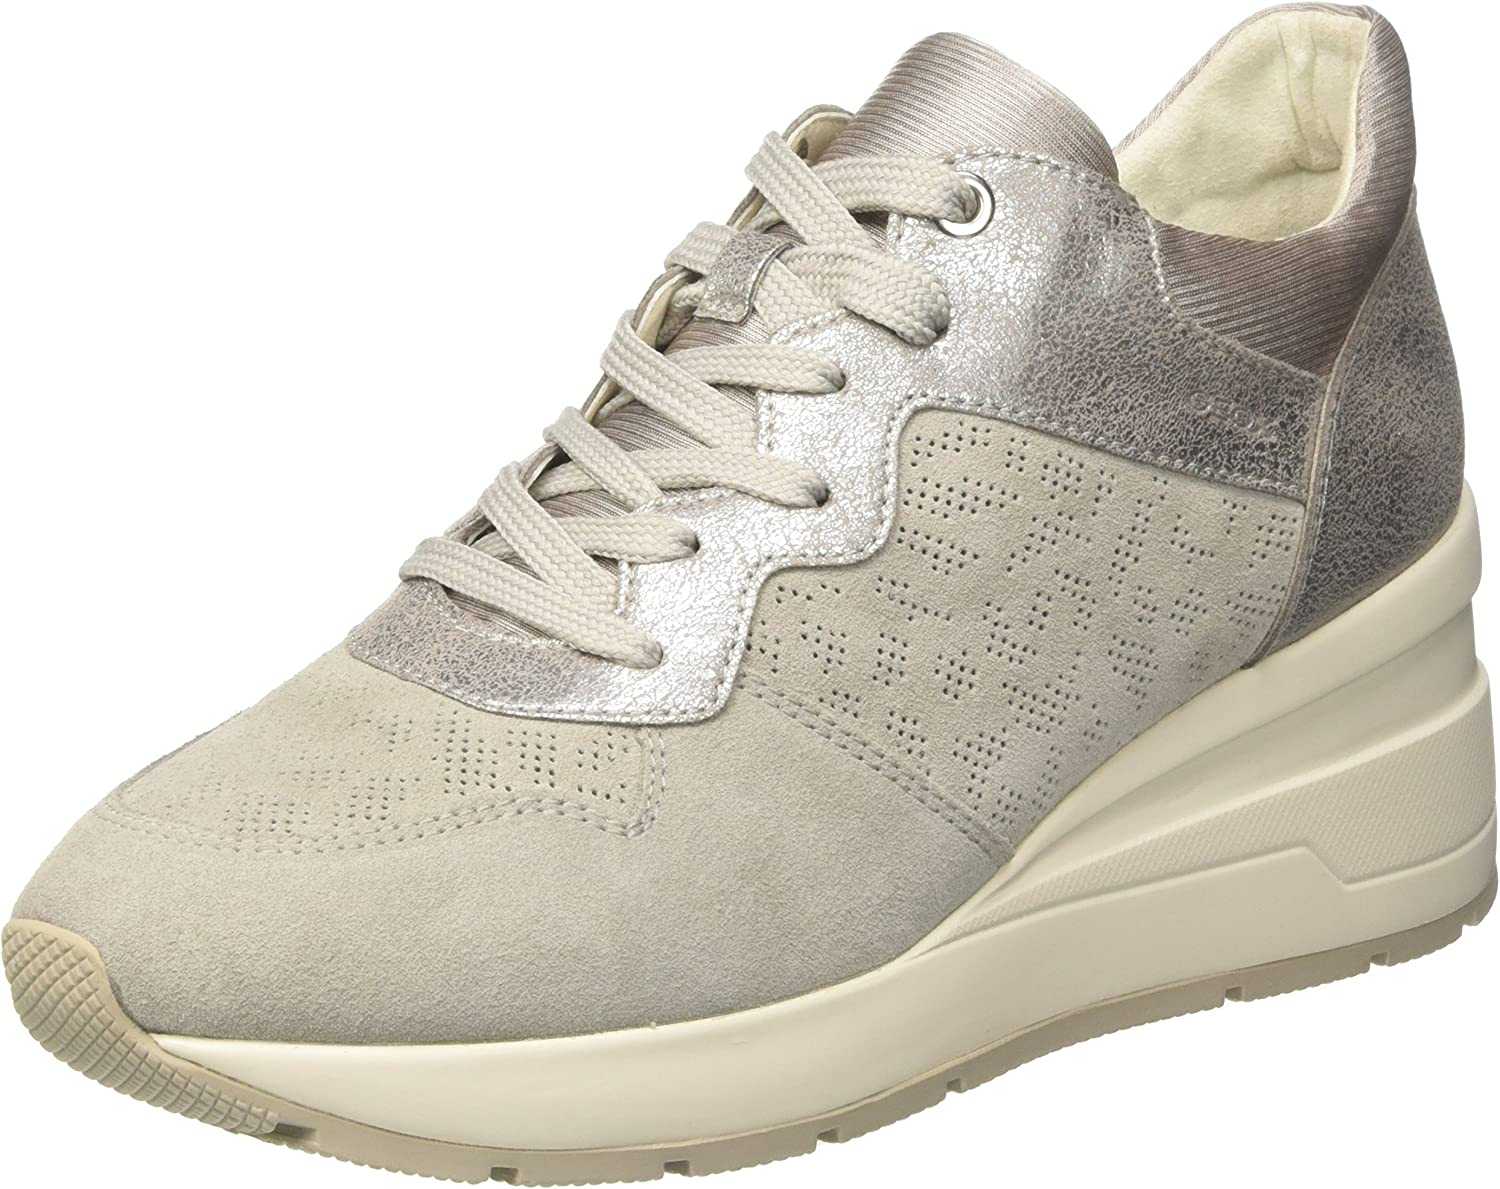 Geox Women's D Zosma C Trainers, Ivory (Off-White), 4